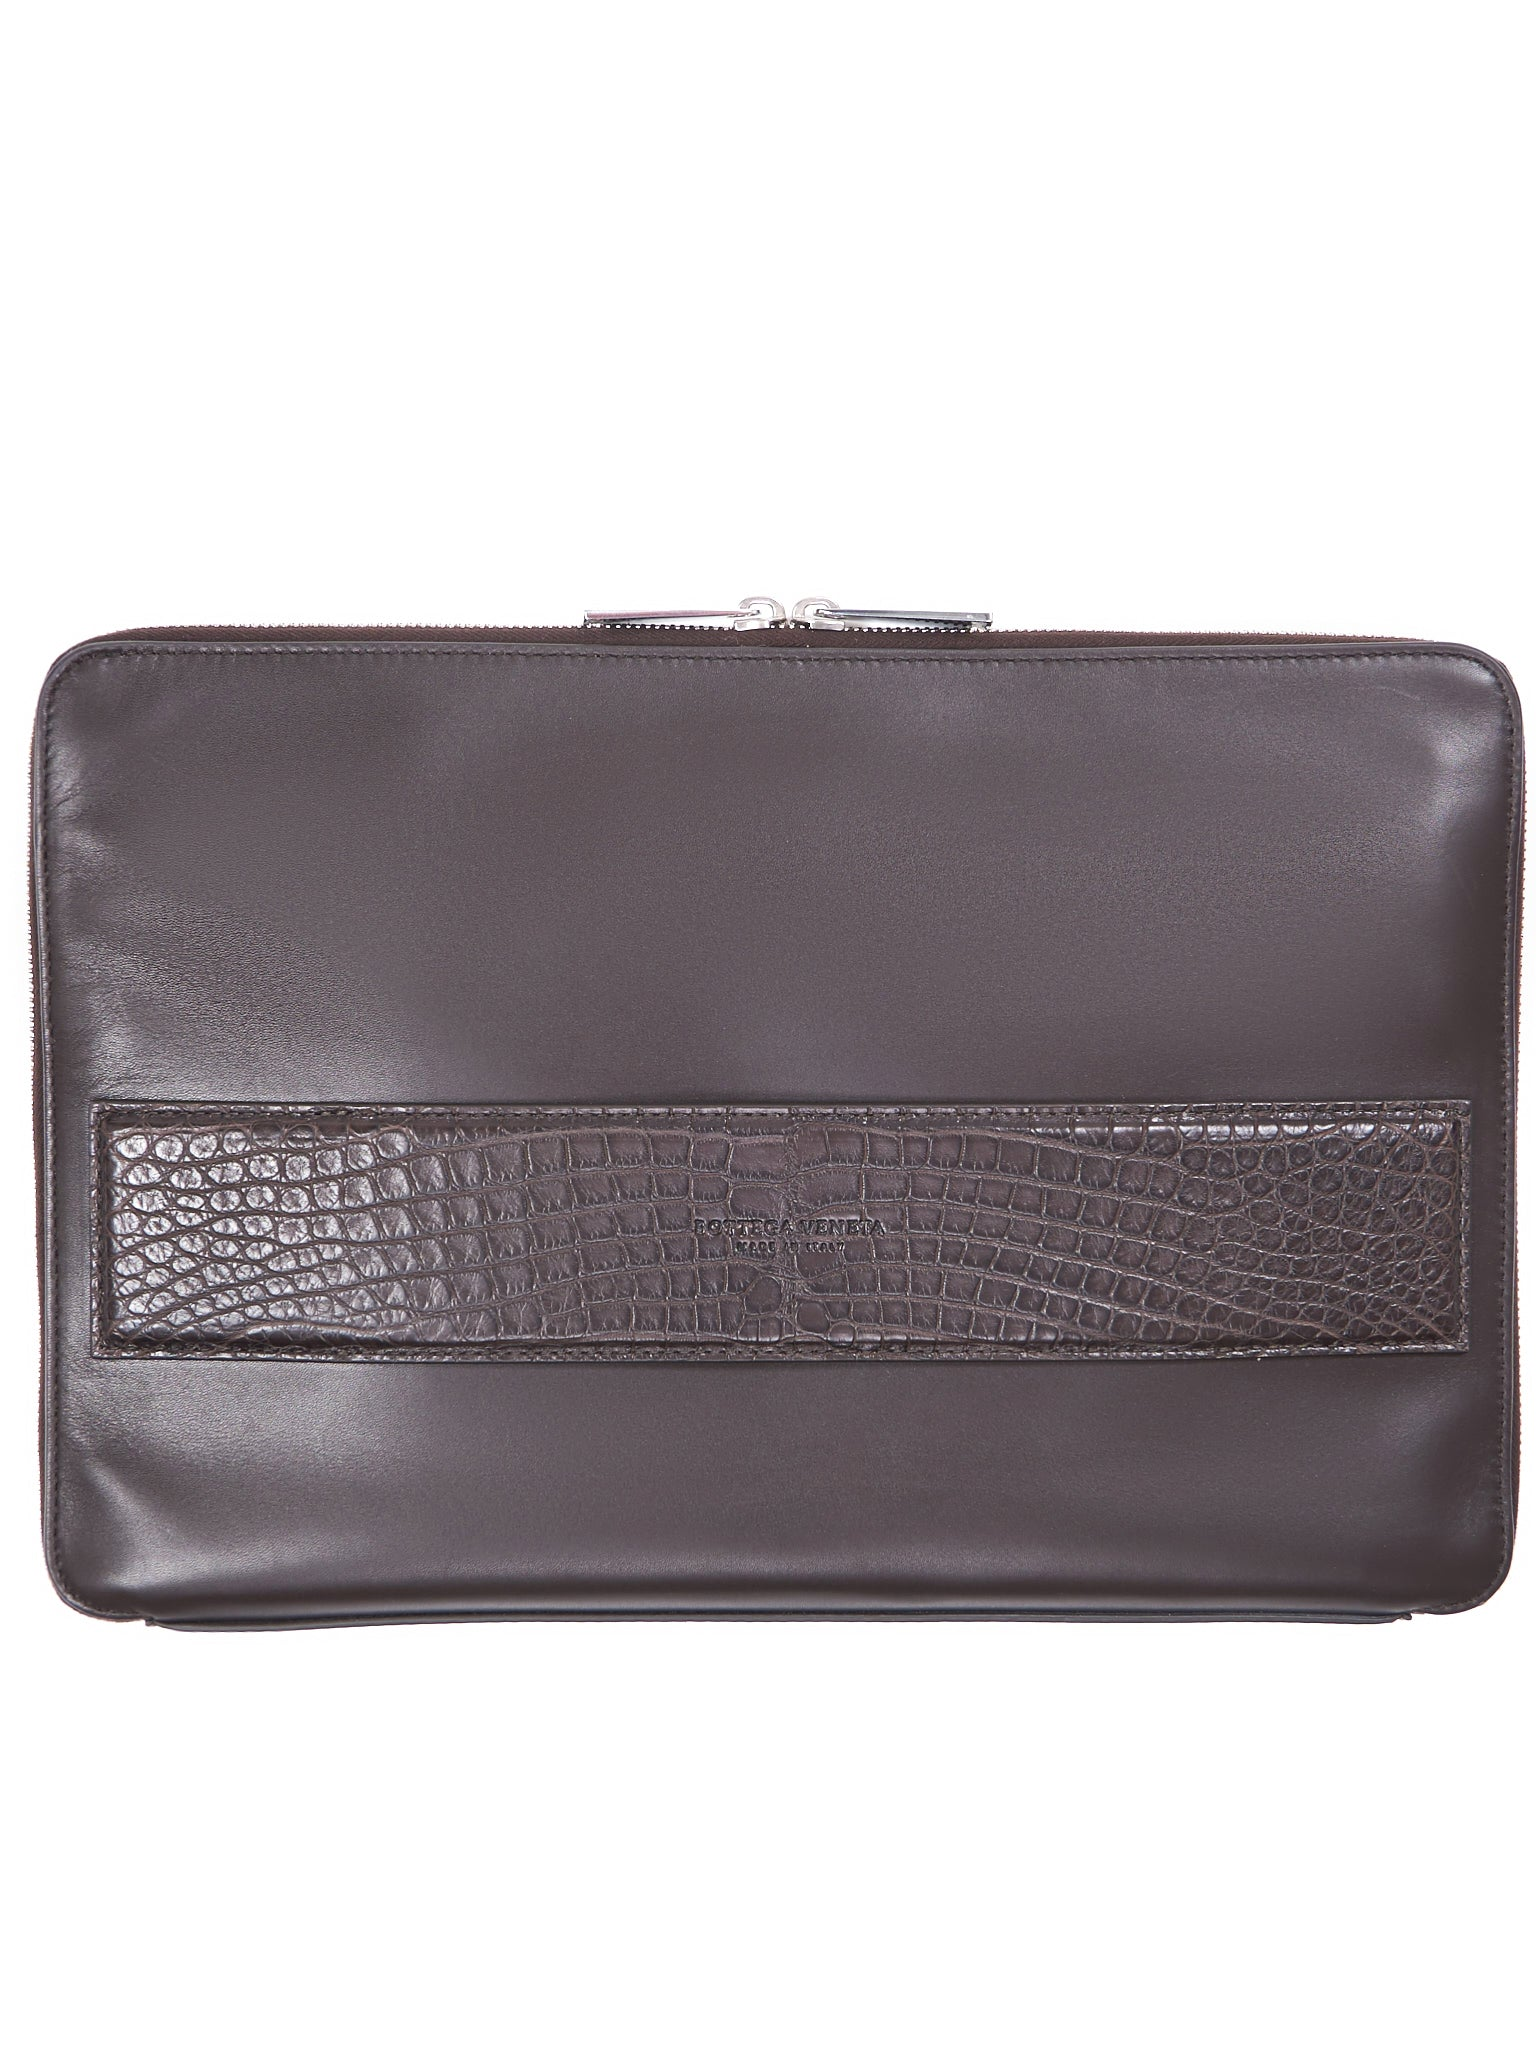 Document Holder (574959VMAU4-FONDENTE)